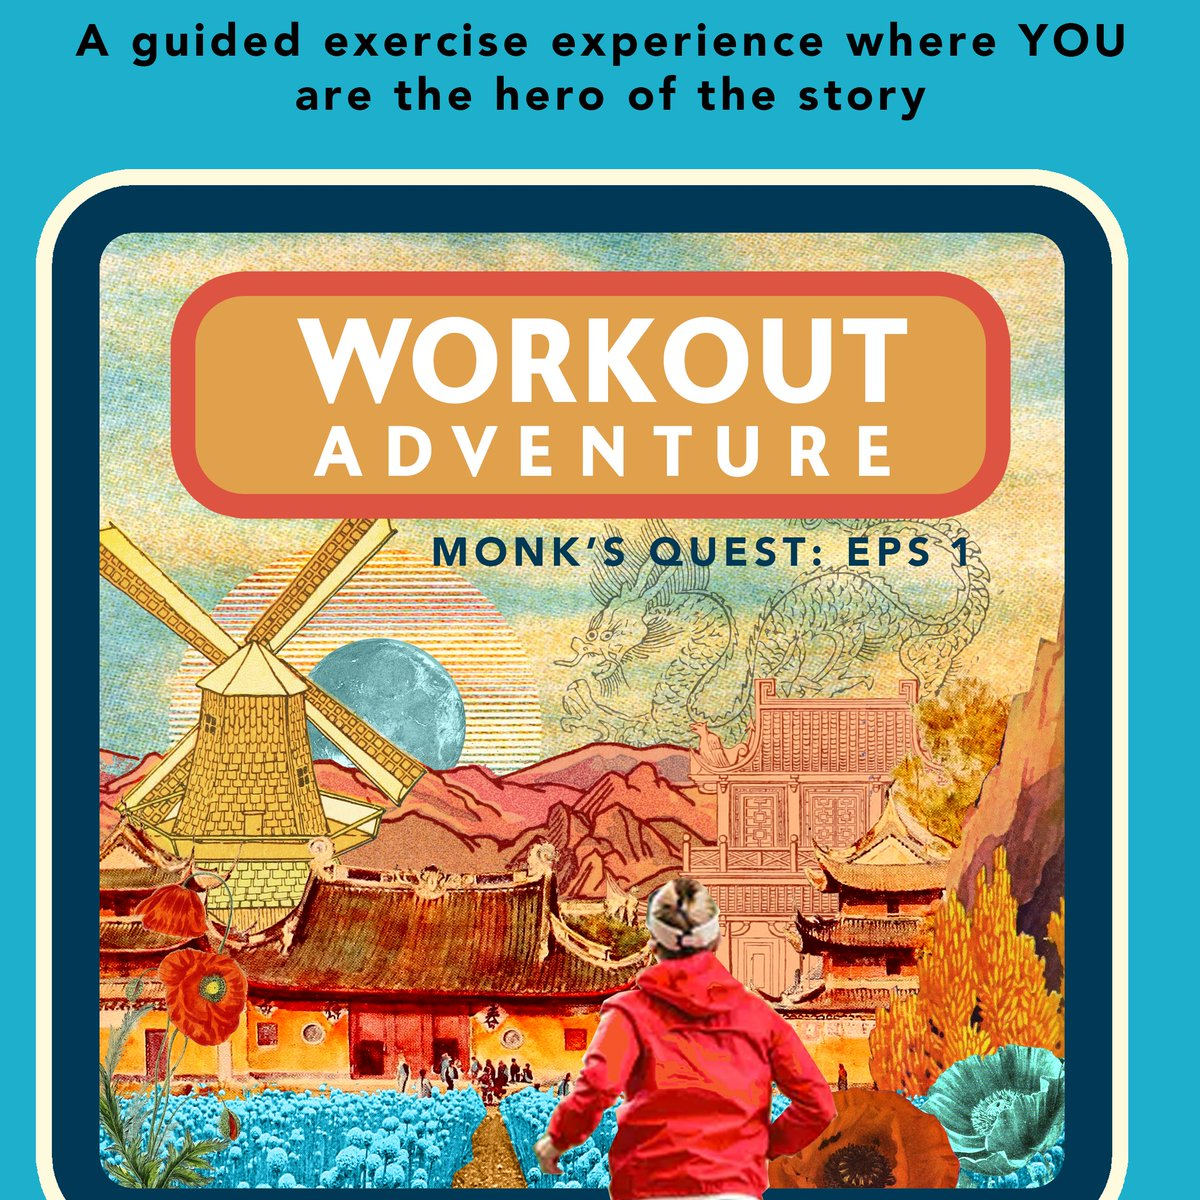 You are a monk on a mission. Grab a rolling die and get ready for an adventurous workout!  (30 minute run with exercises) https://t.co/hPpPxuqaOM #dnd #fitness https://t.co/E4JO8DJRgT